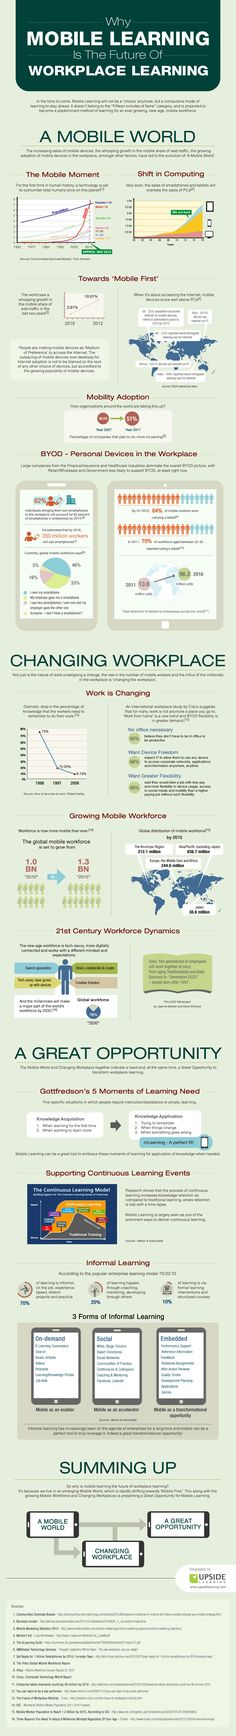 Why Mobile #Learning is the future of #workplace learning #mLearning